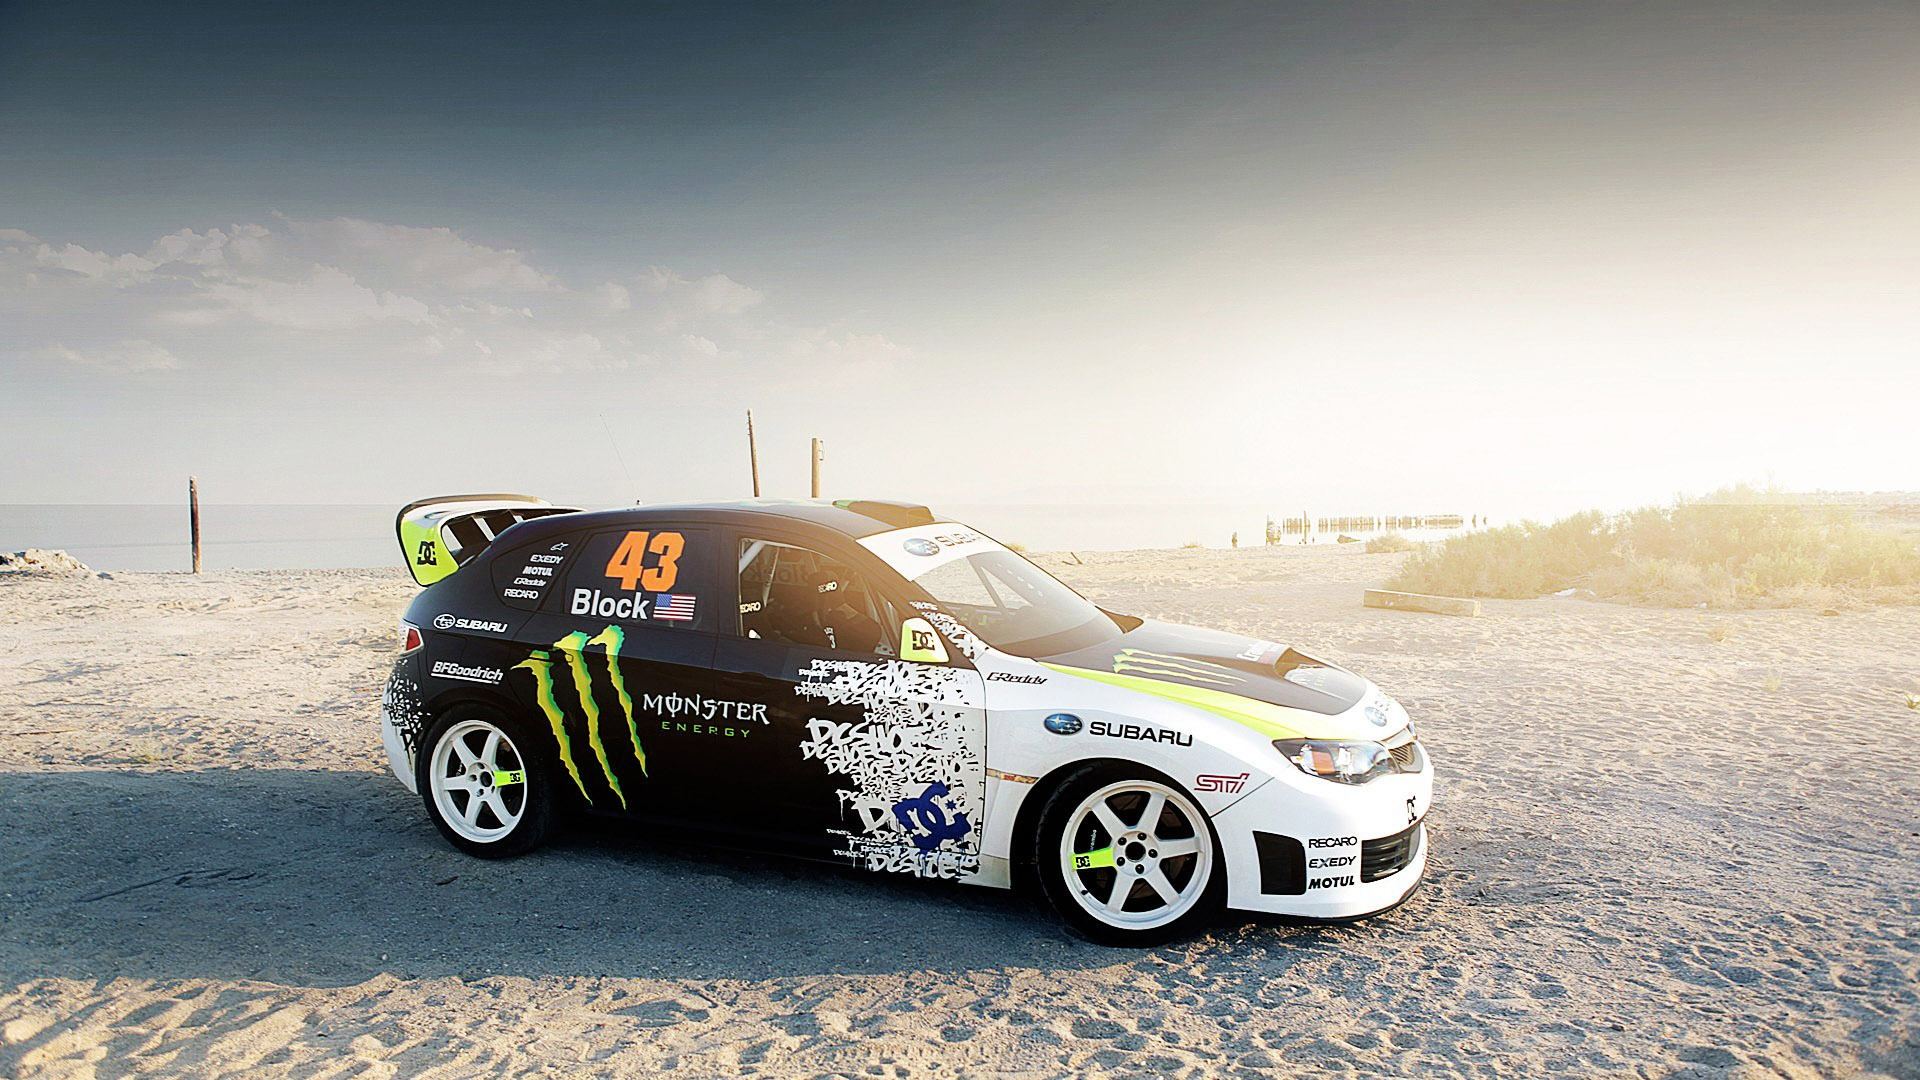 Krishna Wallpaper Desktop 3d Download Rally Car Wallpaper Gallery